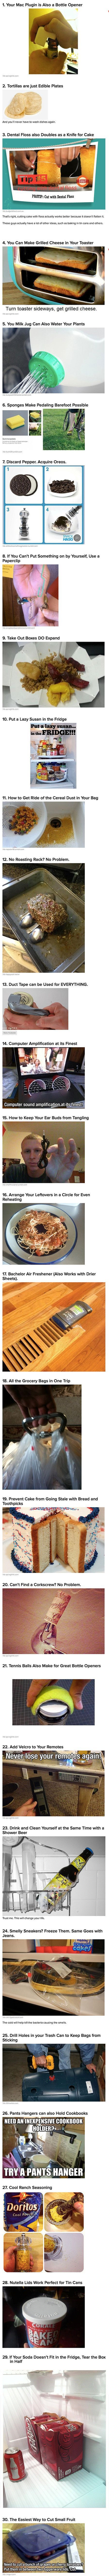 Weird but strangely awesome tips.